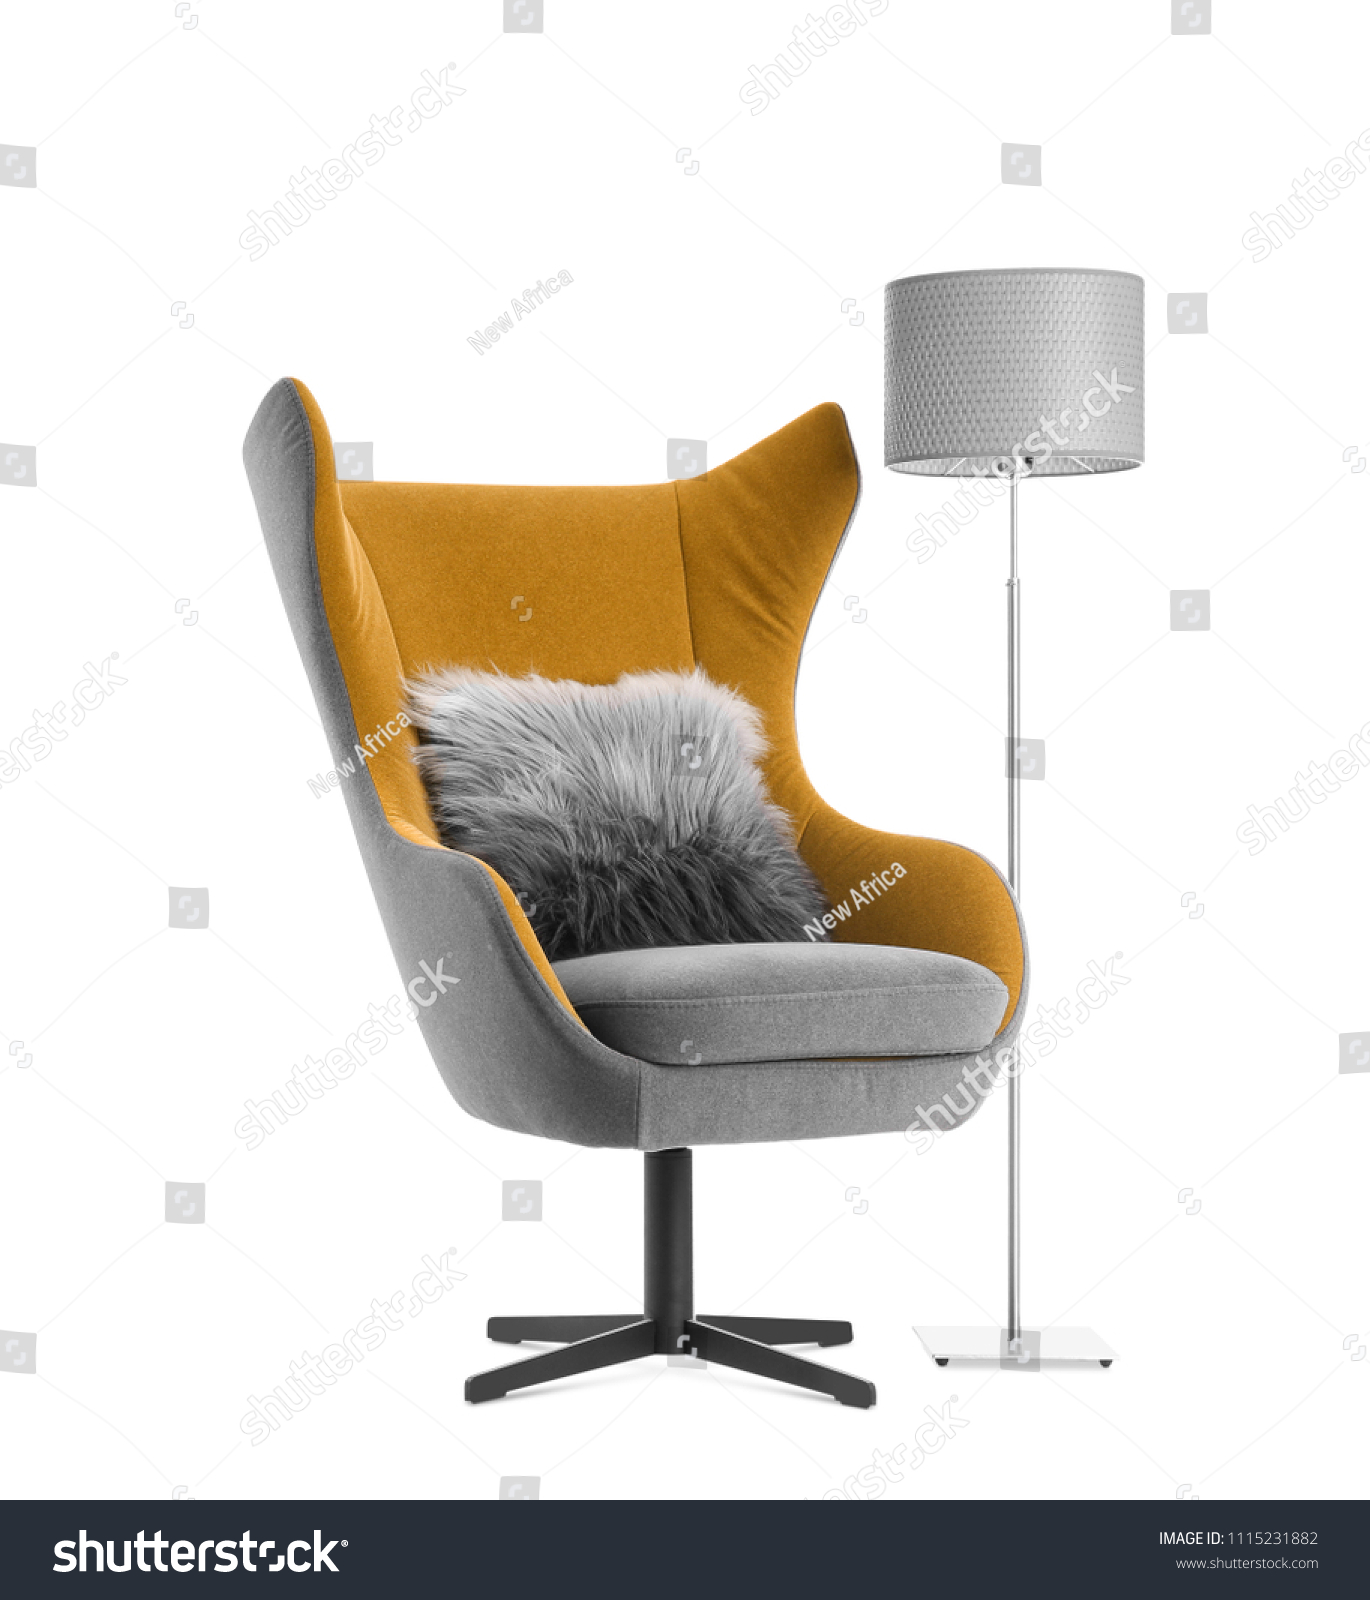 Comfortable armchair with pillow and lamp on white background. Interior element #1115231882